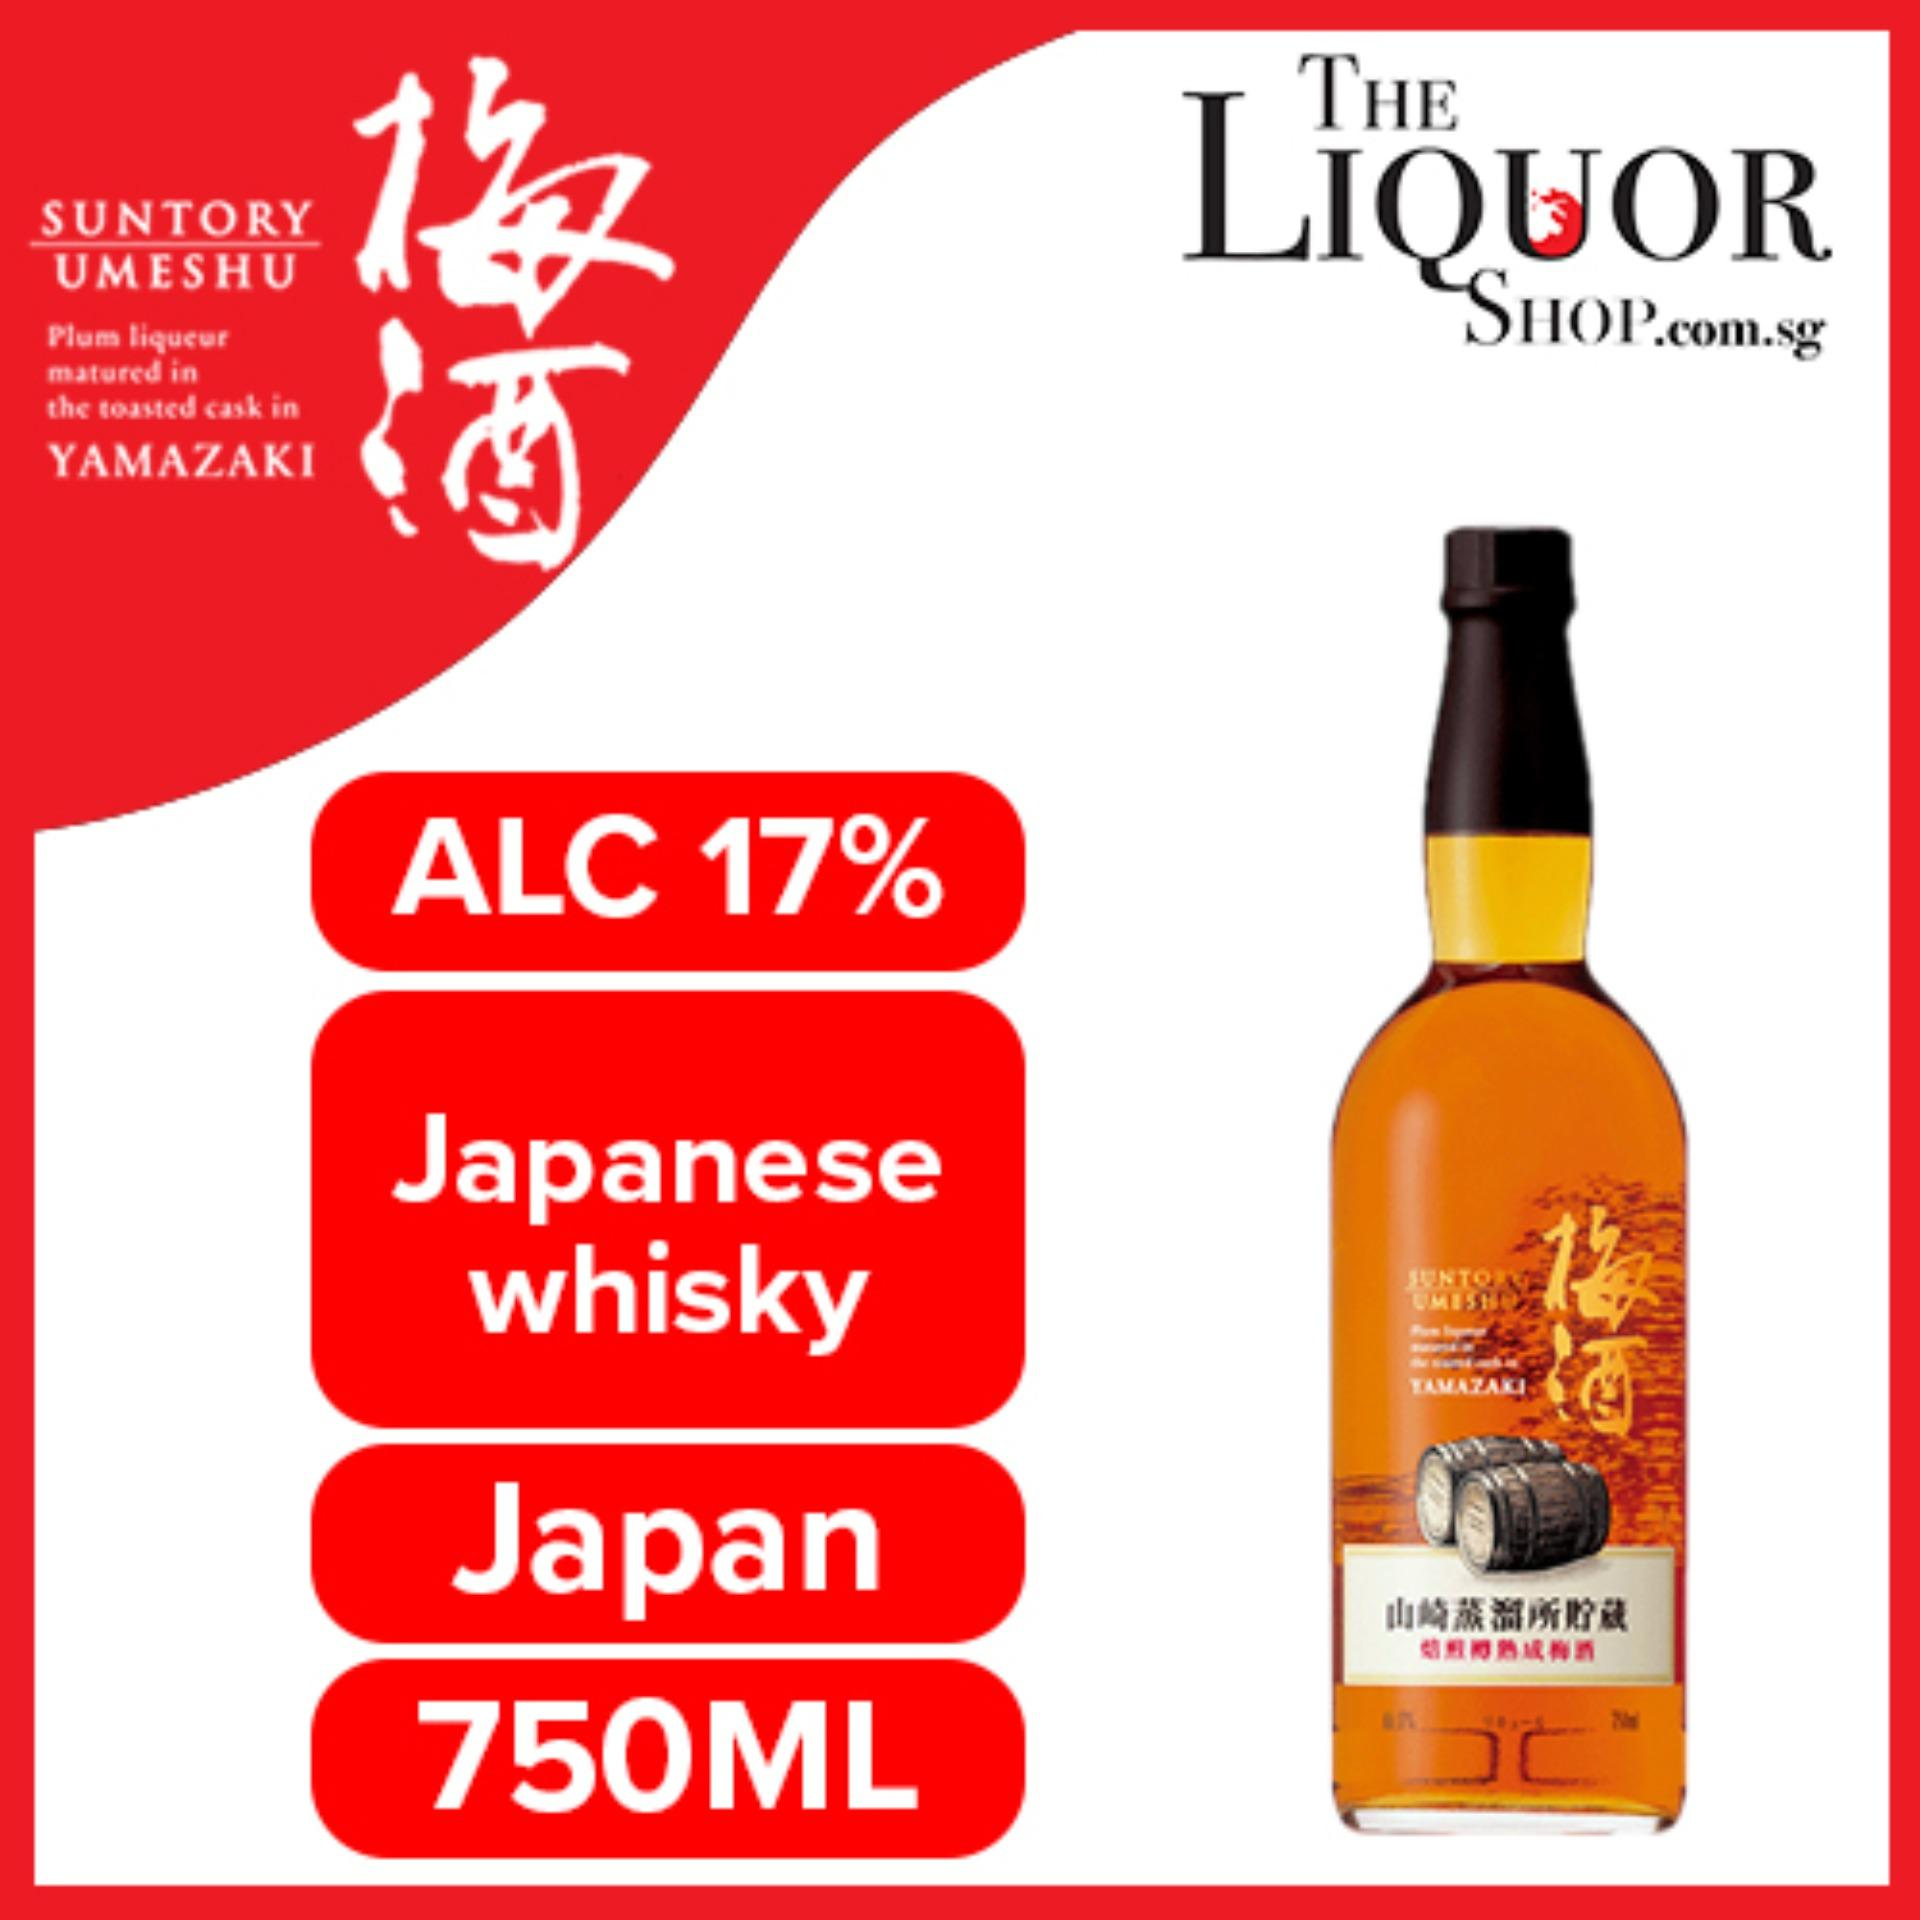 Suntory Umeshu Yamazaki Cask 750ml By The Liquor Shop.